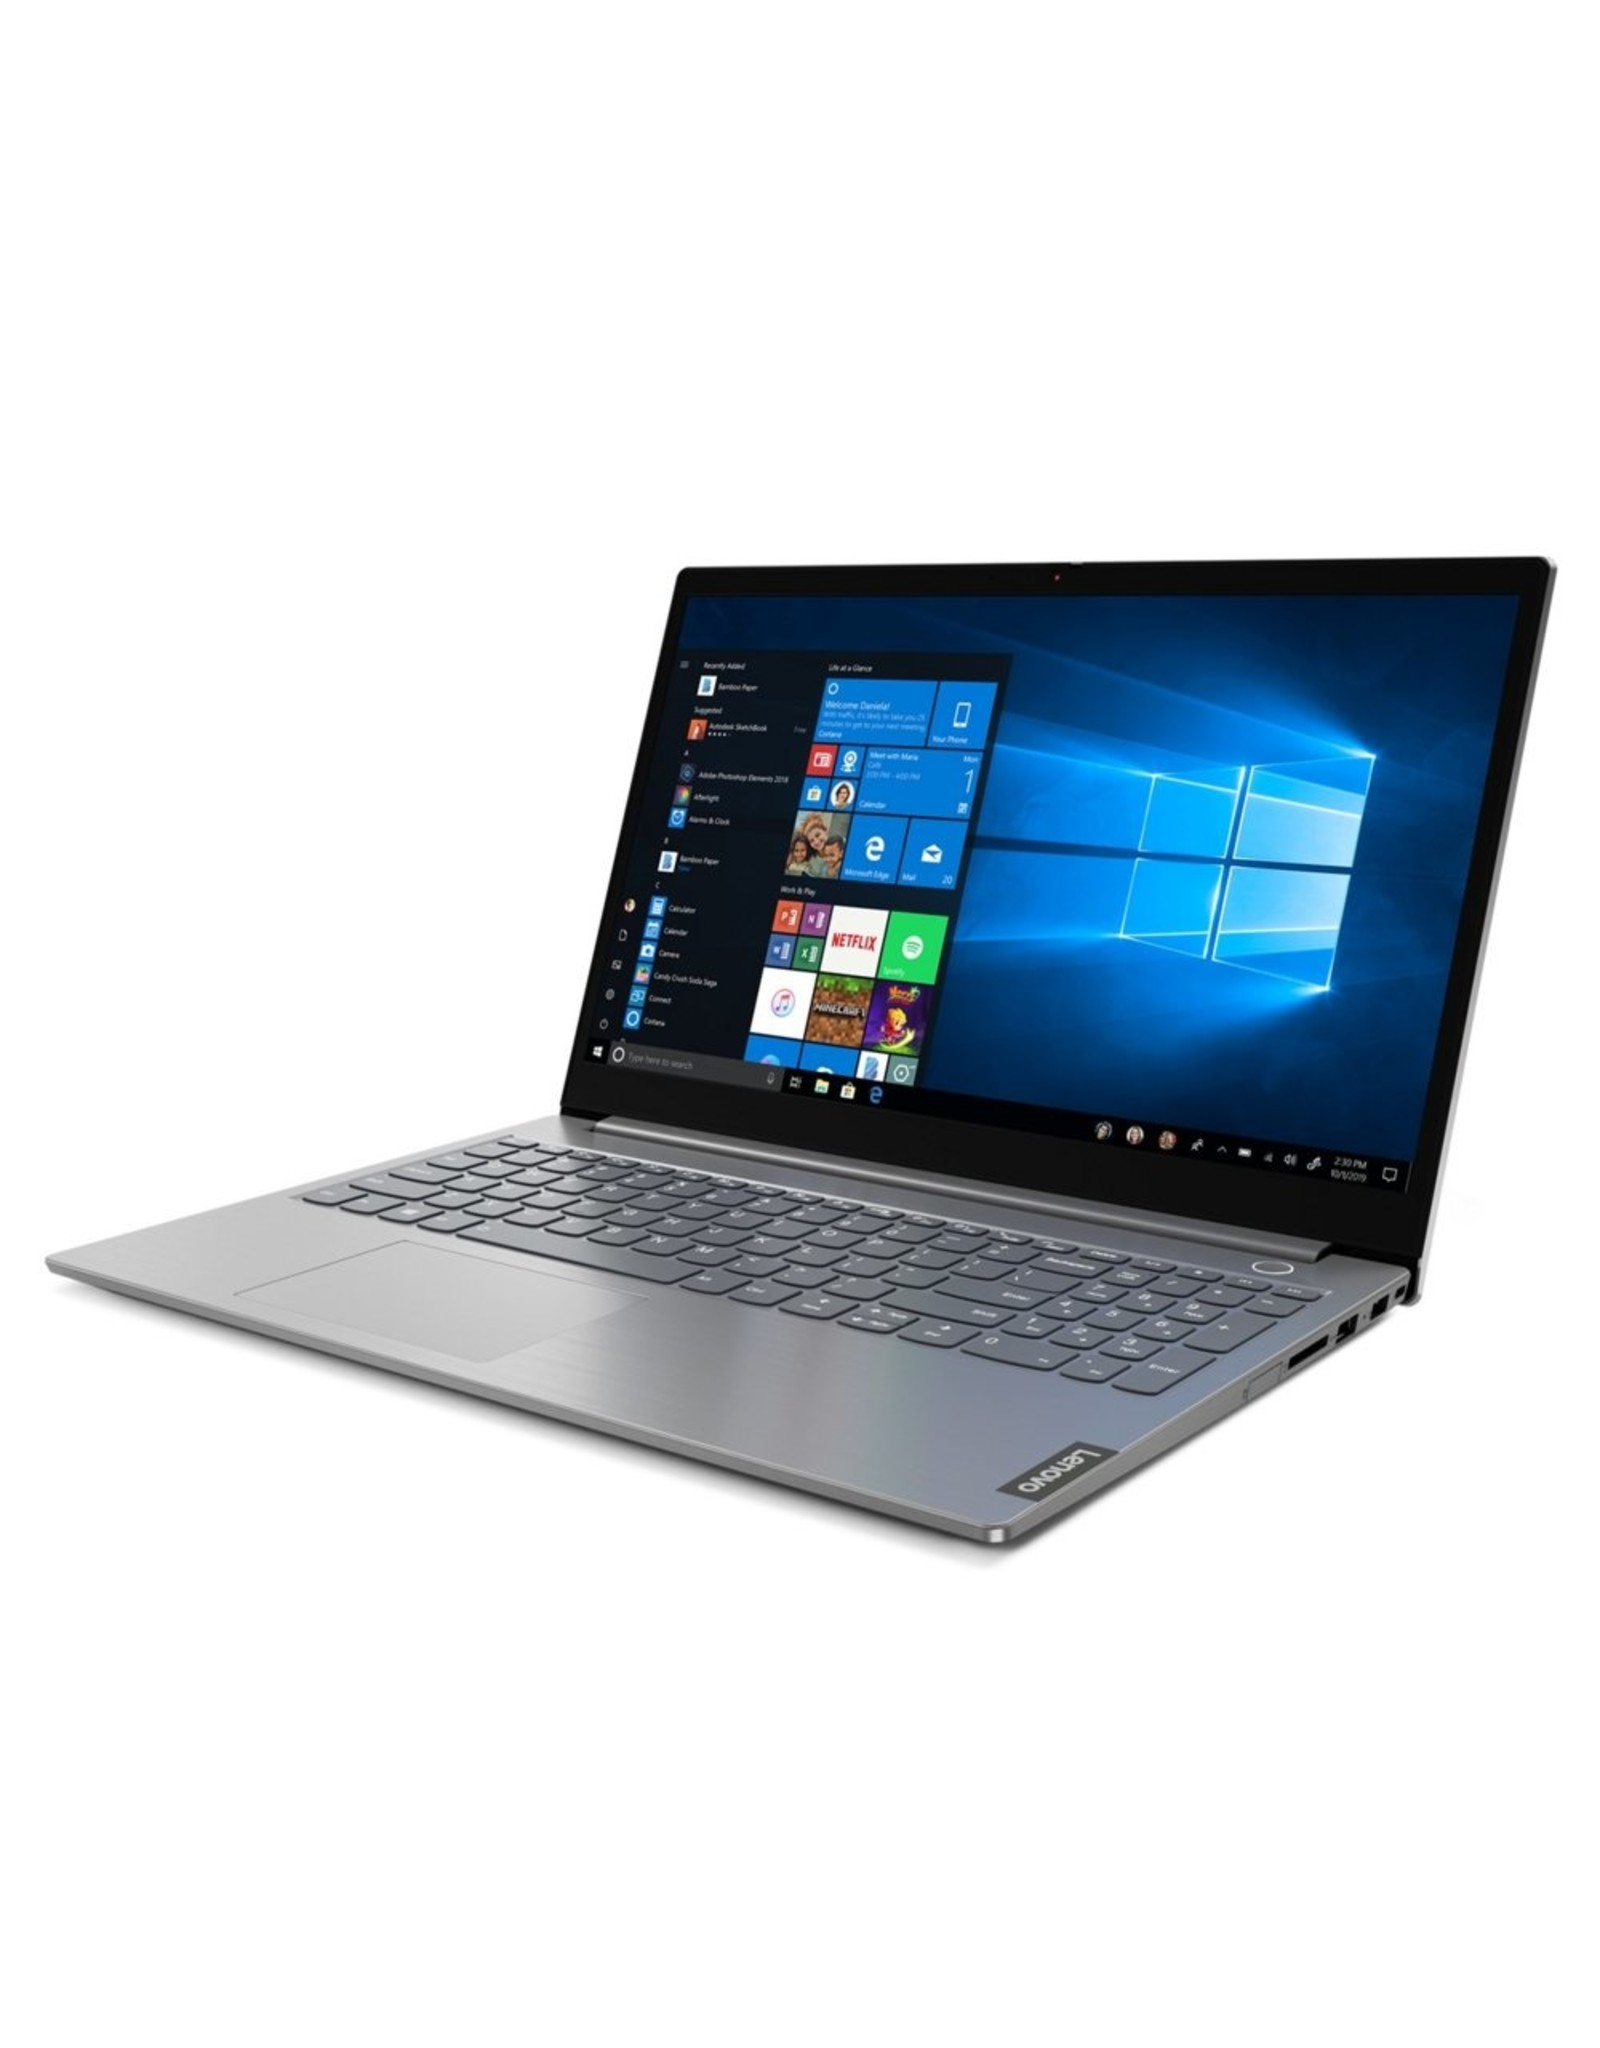 Lenovo ThinkB.5.6 / Ryzen 7 4700u 512gb / 16GB / W10 / RFG (refurbished)